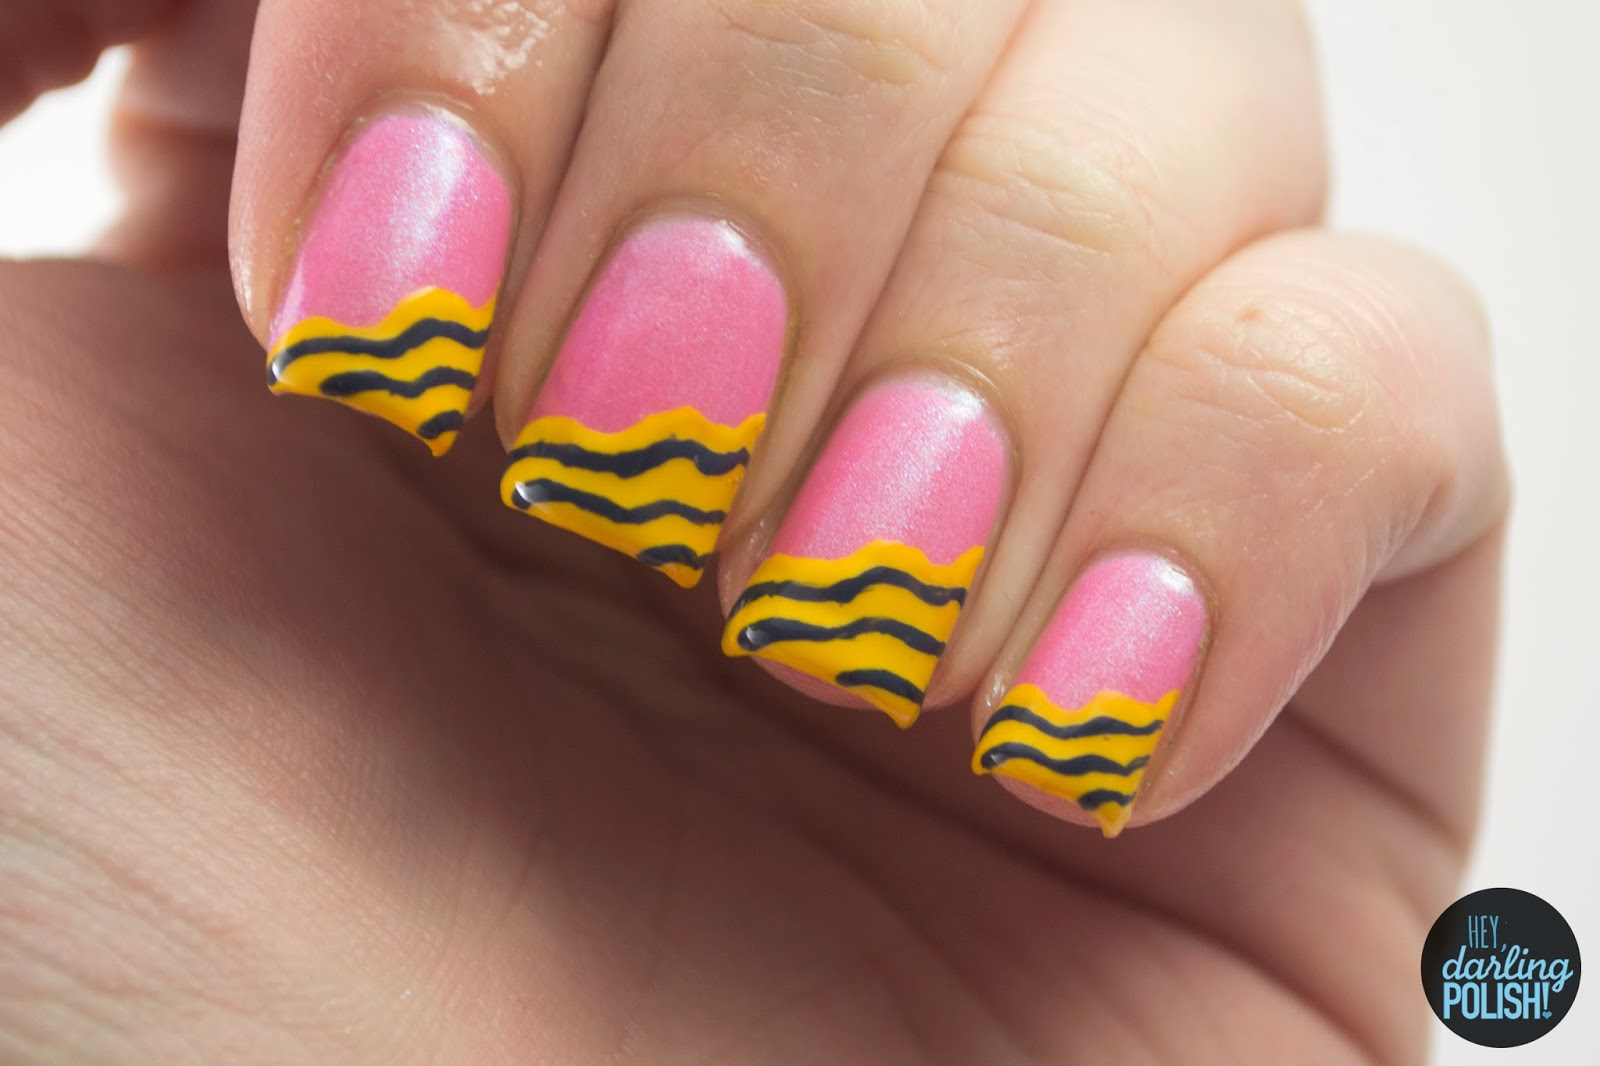 nails, nail art, nail polish, polish, hey darling polish, tri polish challenge, pink, blue, yellow, tpc, waves